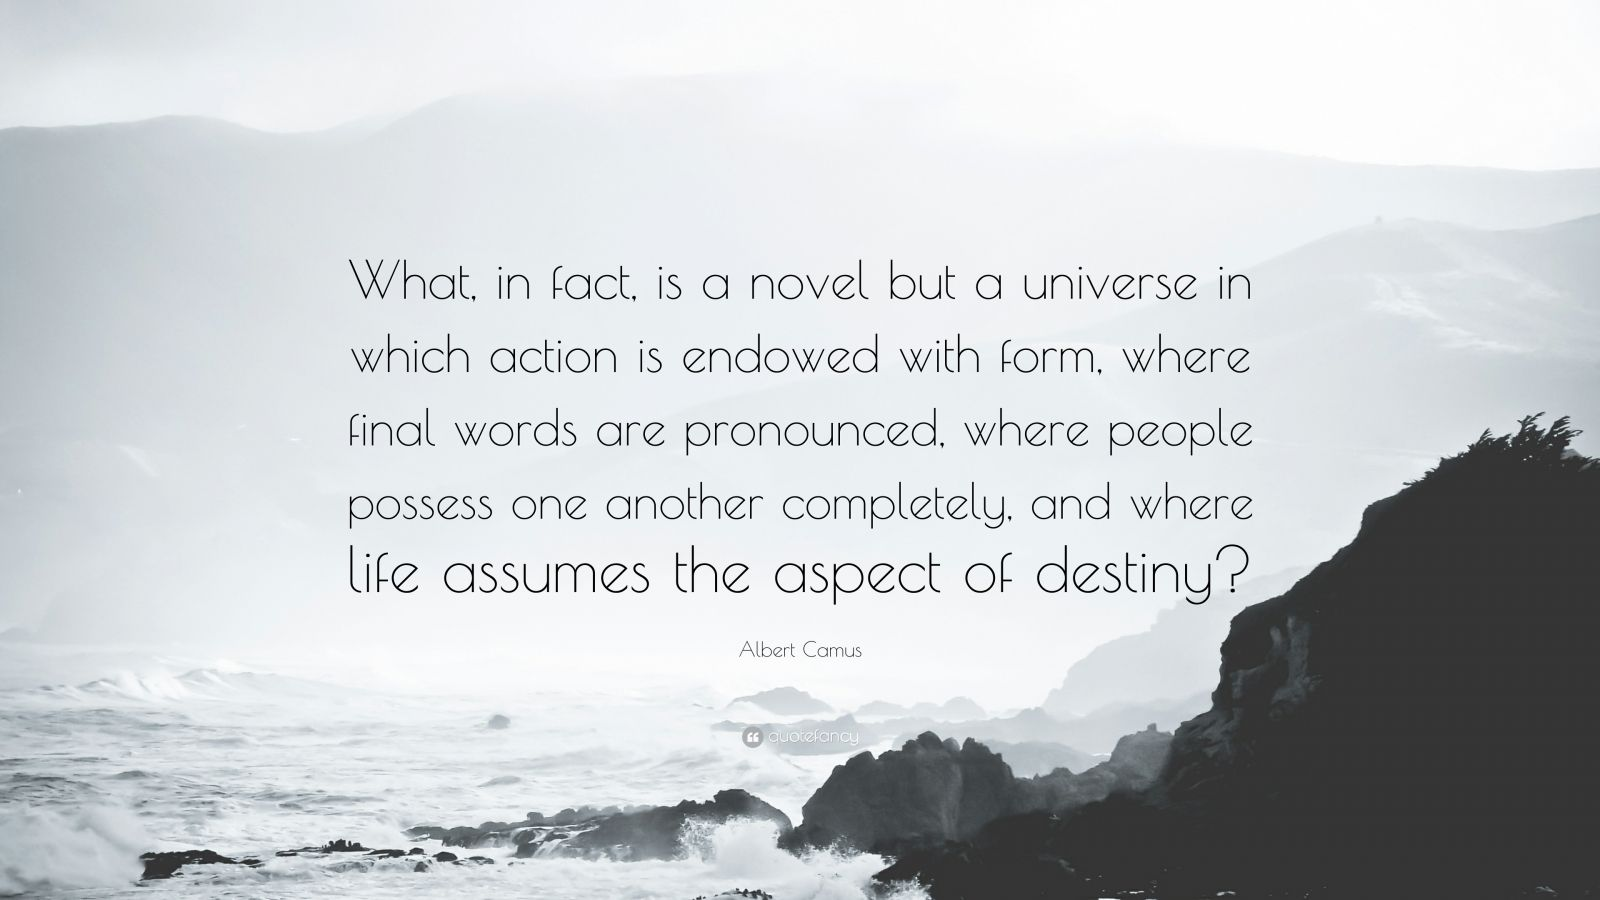 """Albert Camus Quote: """"What, in fact, is a novel but a universe in which action is endowed with form, where final words are pronounced, where people possess one another completely, and where life assumes the aspect of destiny?"""""""